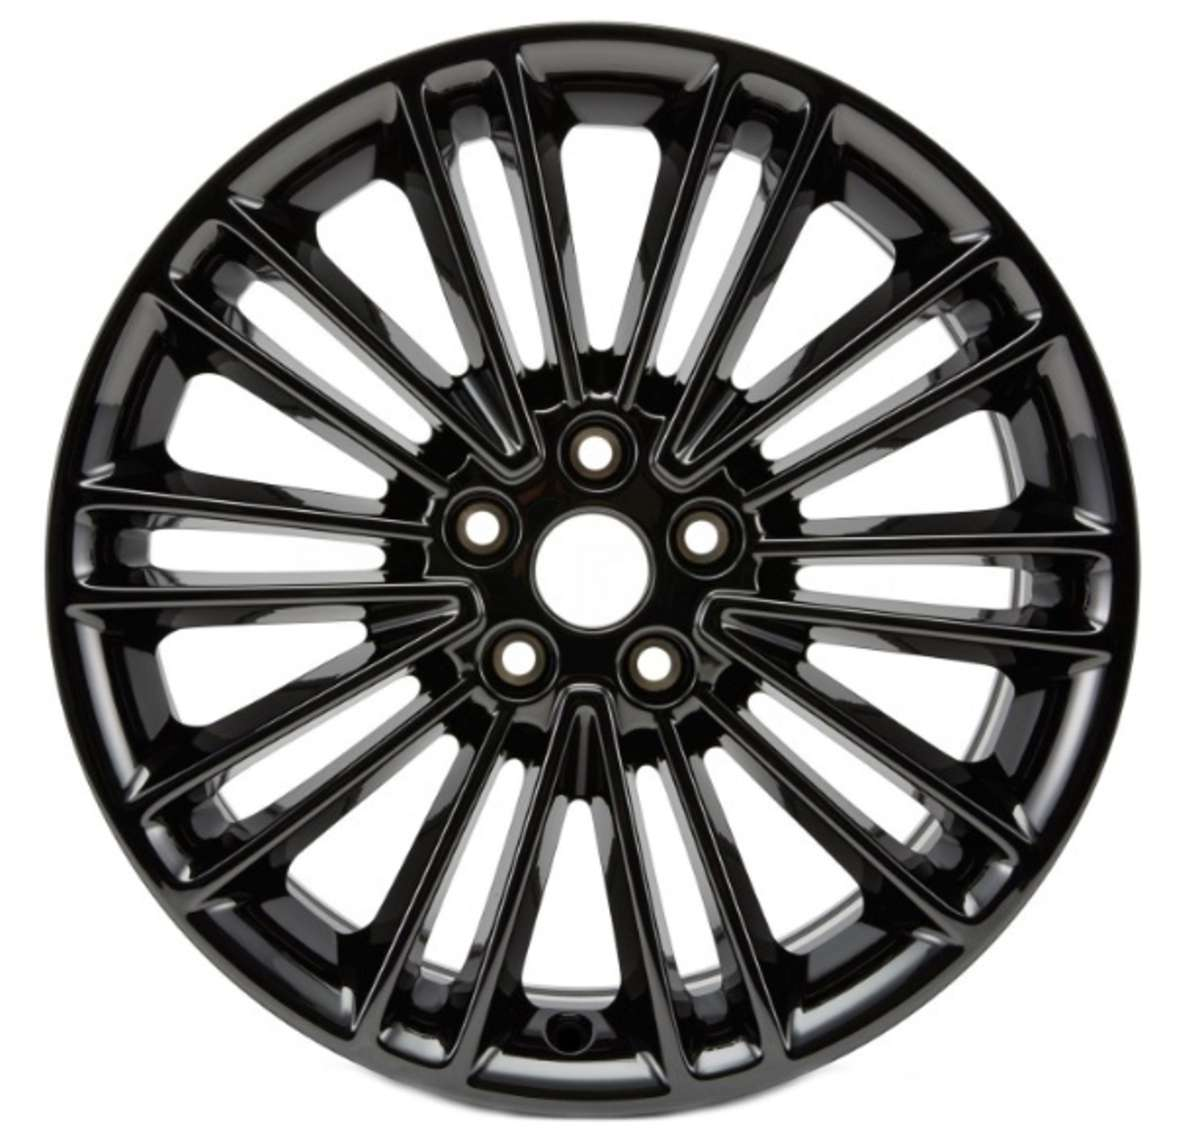 New 18 Replacement Rim For Ford Fusion 2013 Wheel